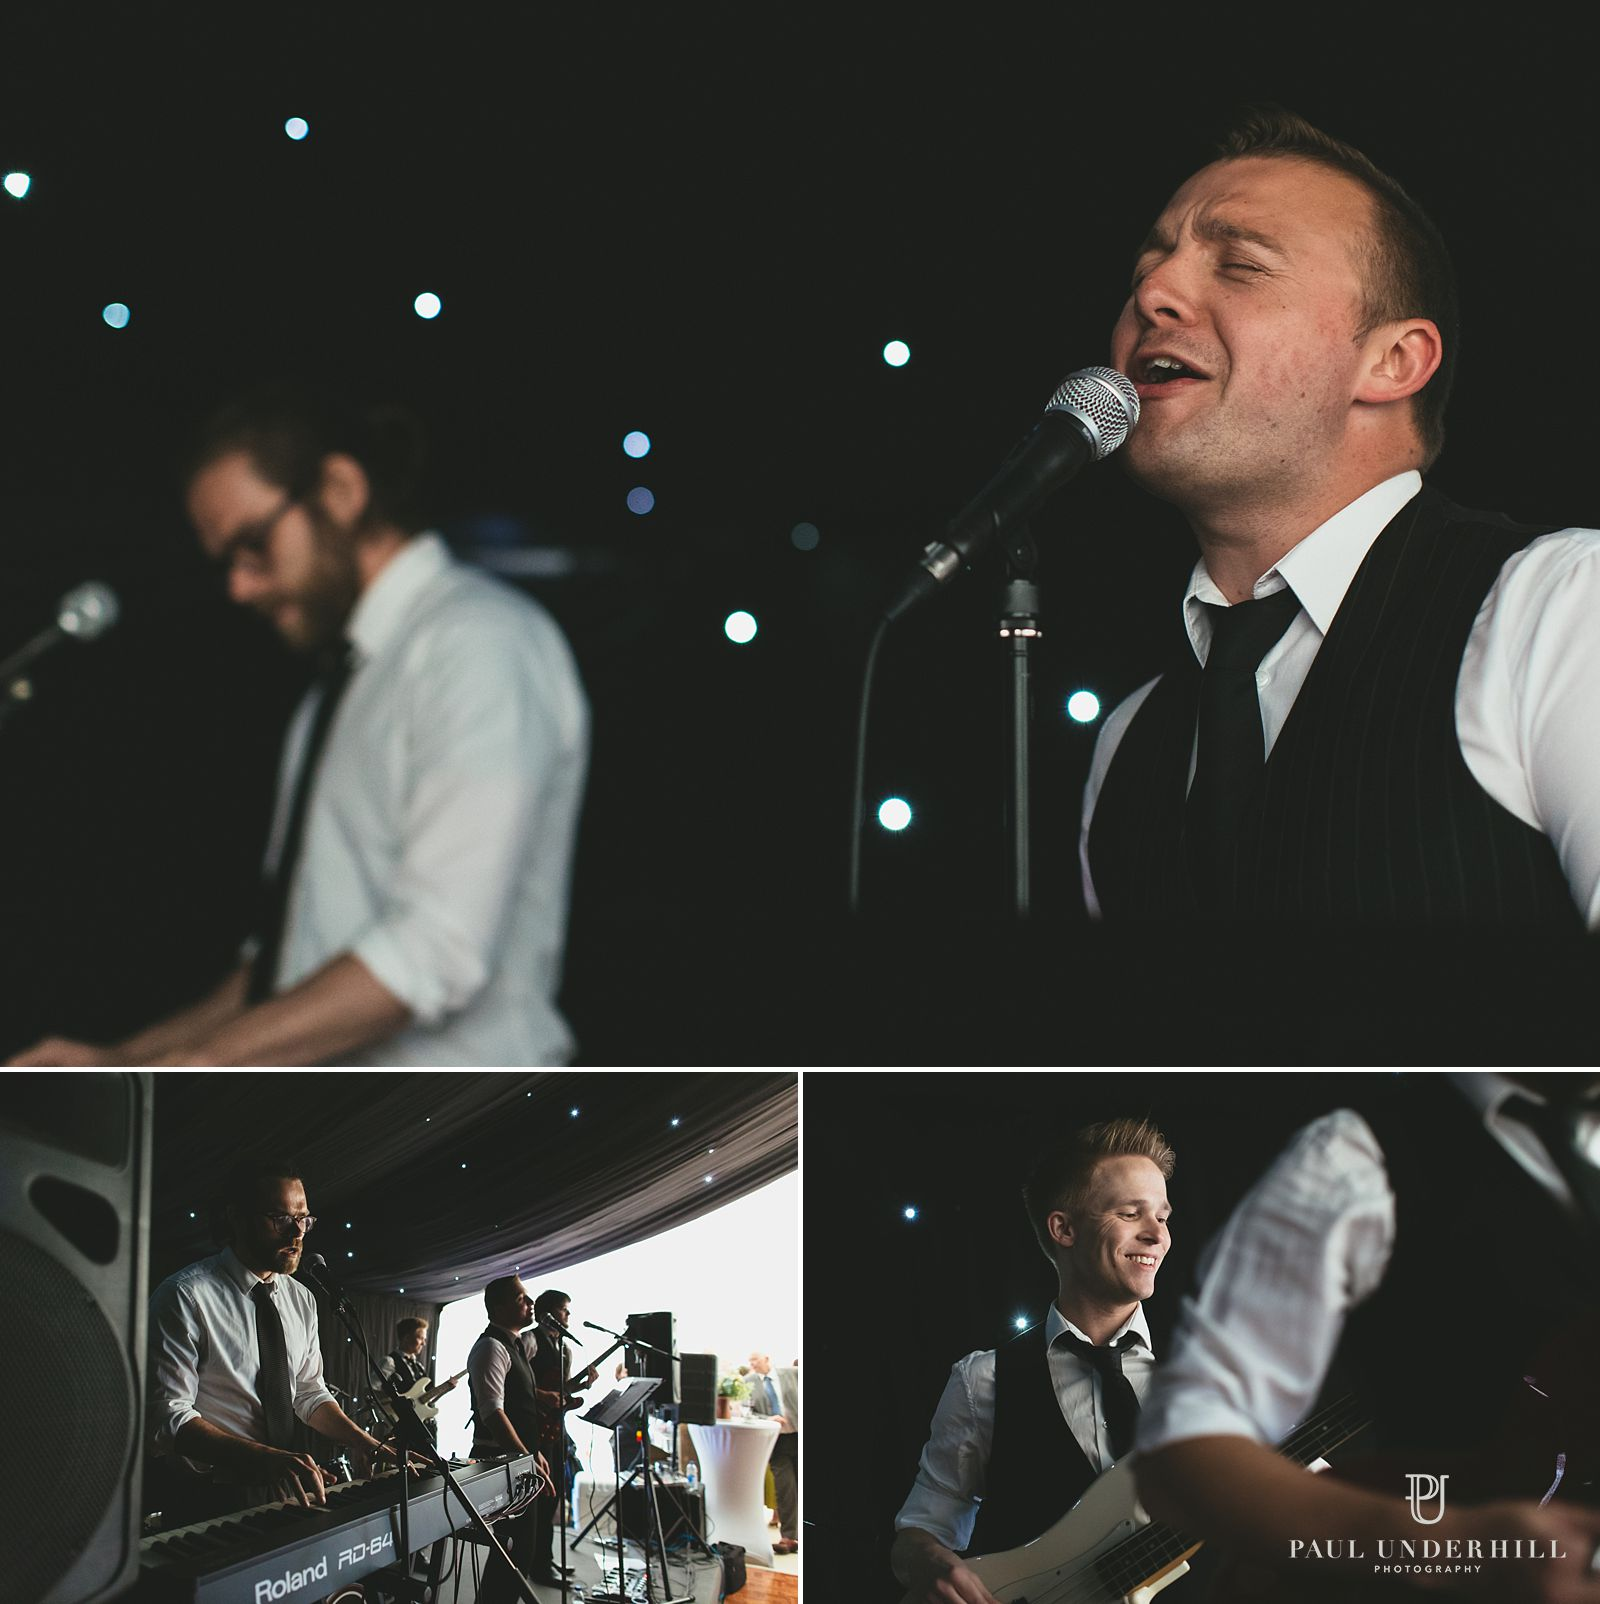 Wedding band performing in Dorset